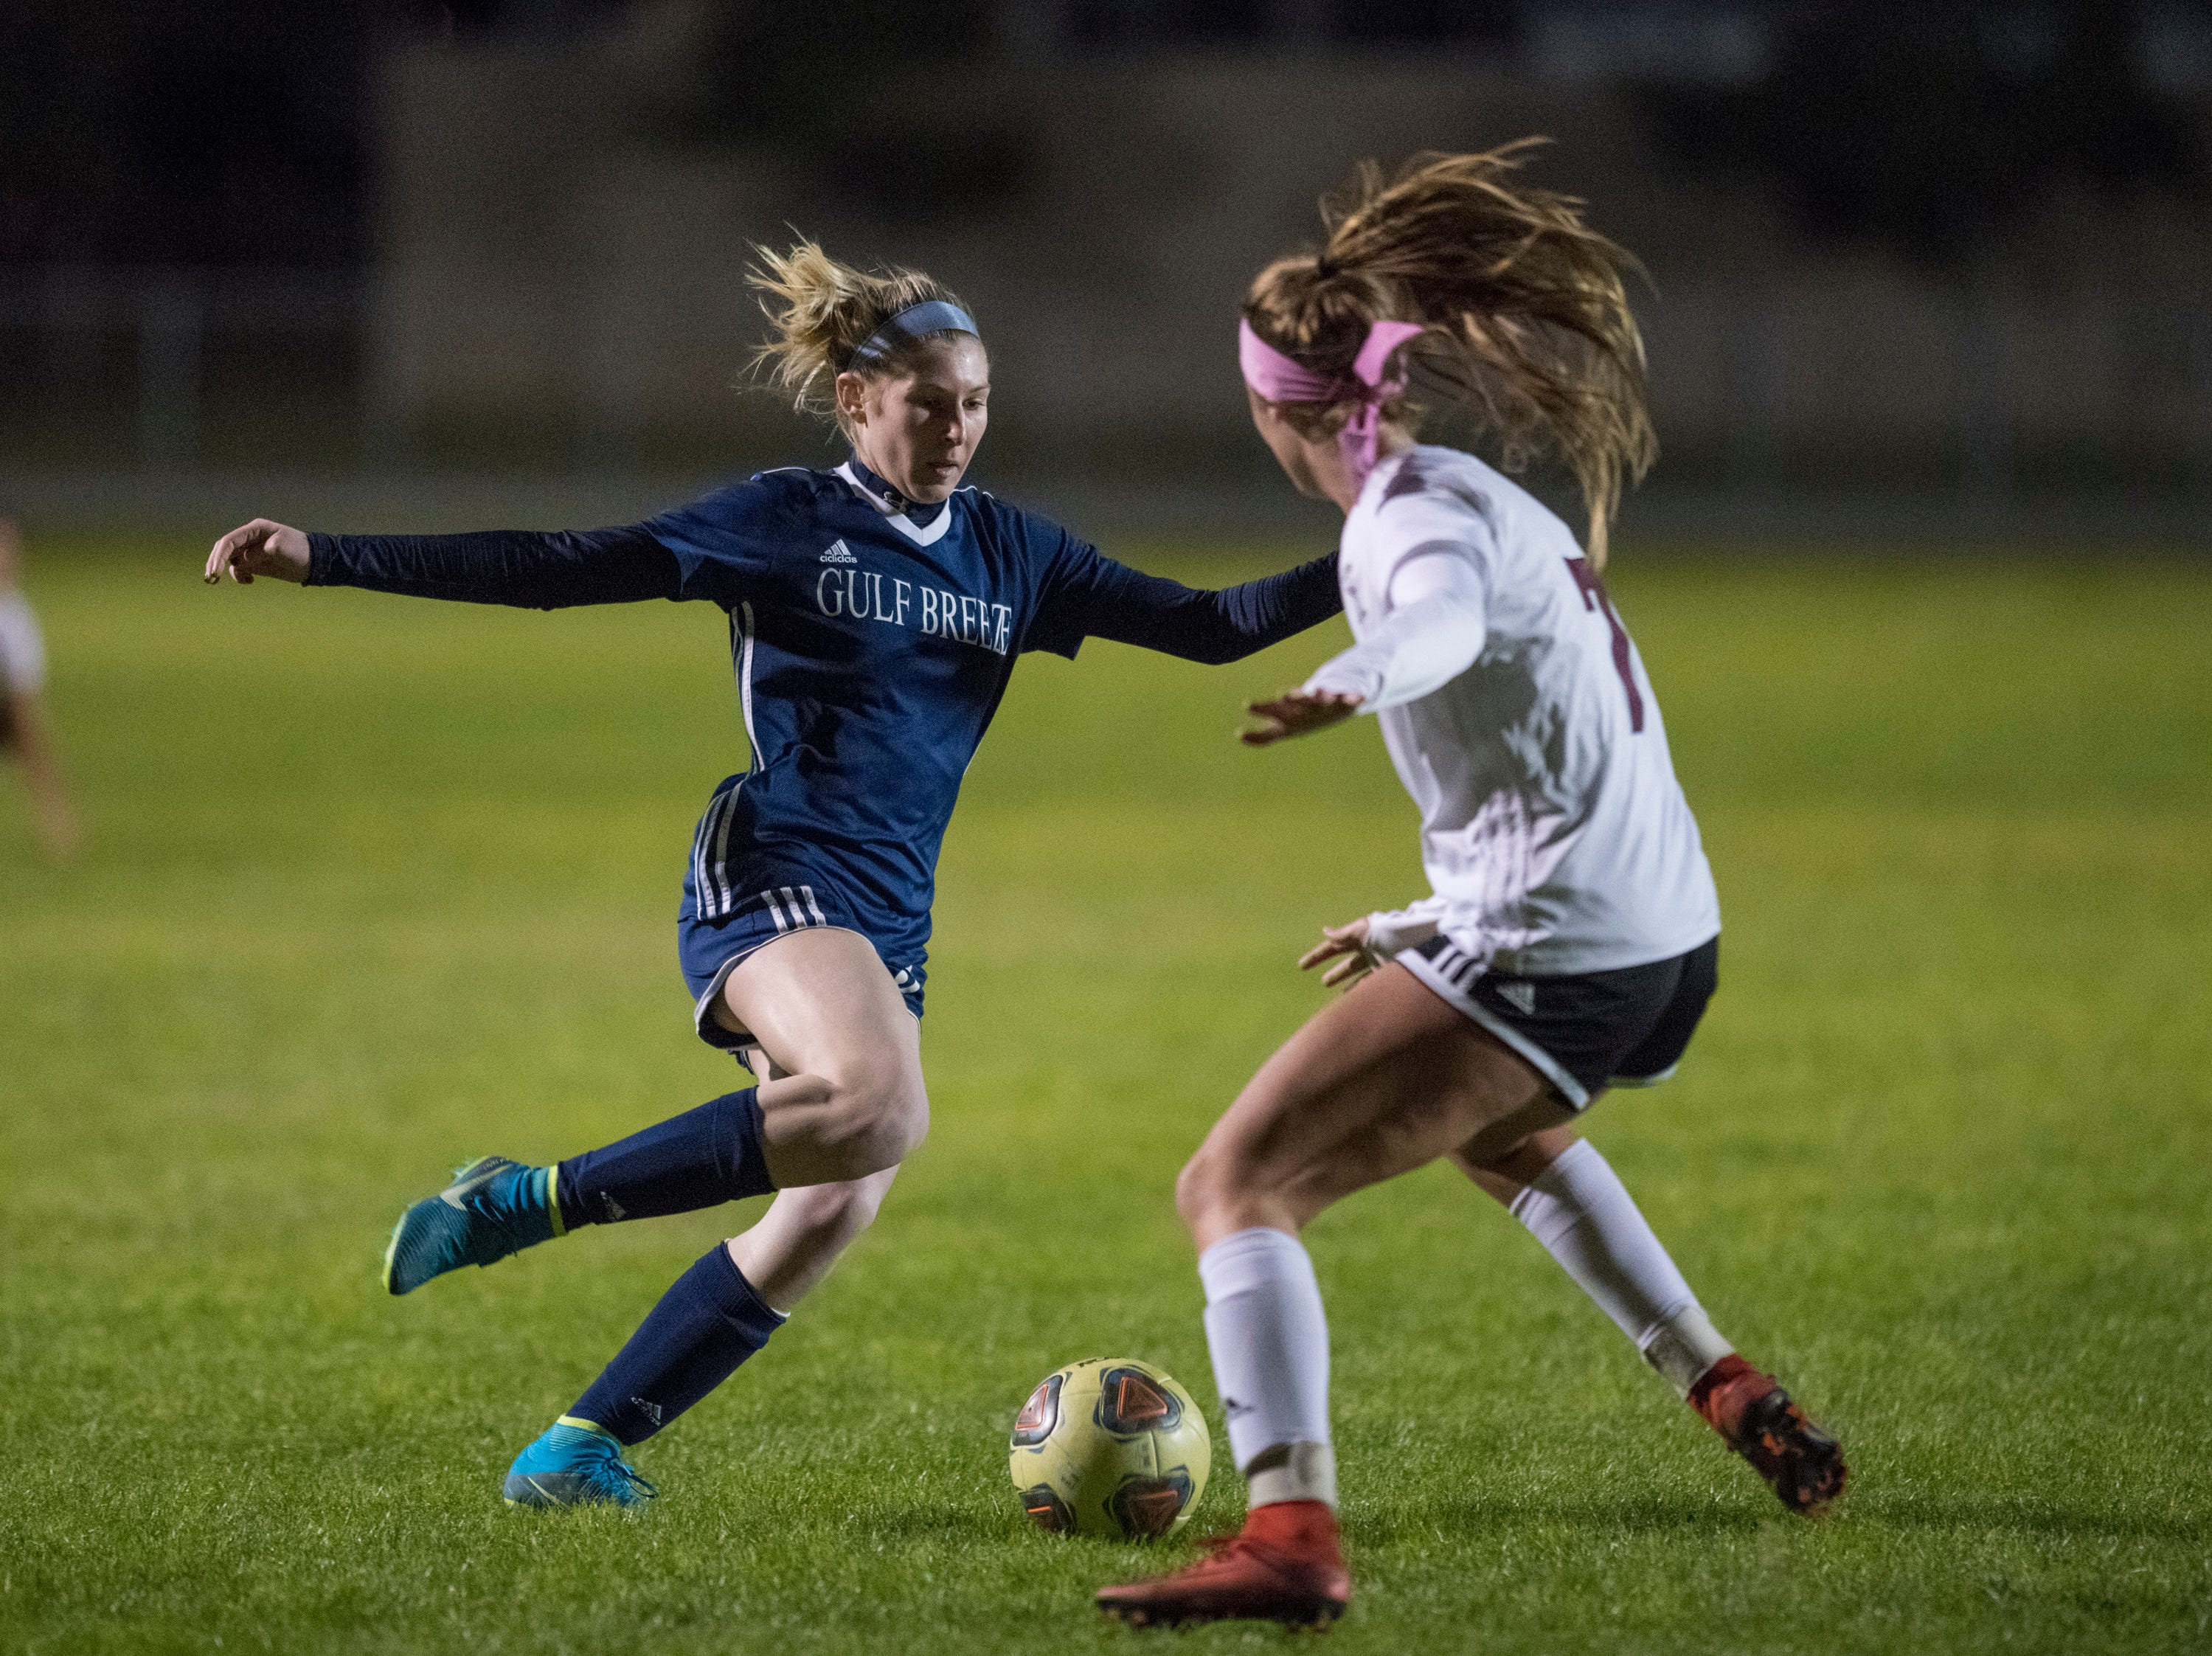 Riley Cassidy (9) tries to drive past Avery Hanson (7) during the Niceville vs Gulf Breeze soccer game at Gulf Breeze High School on Thursday, January 10, 2019.